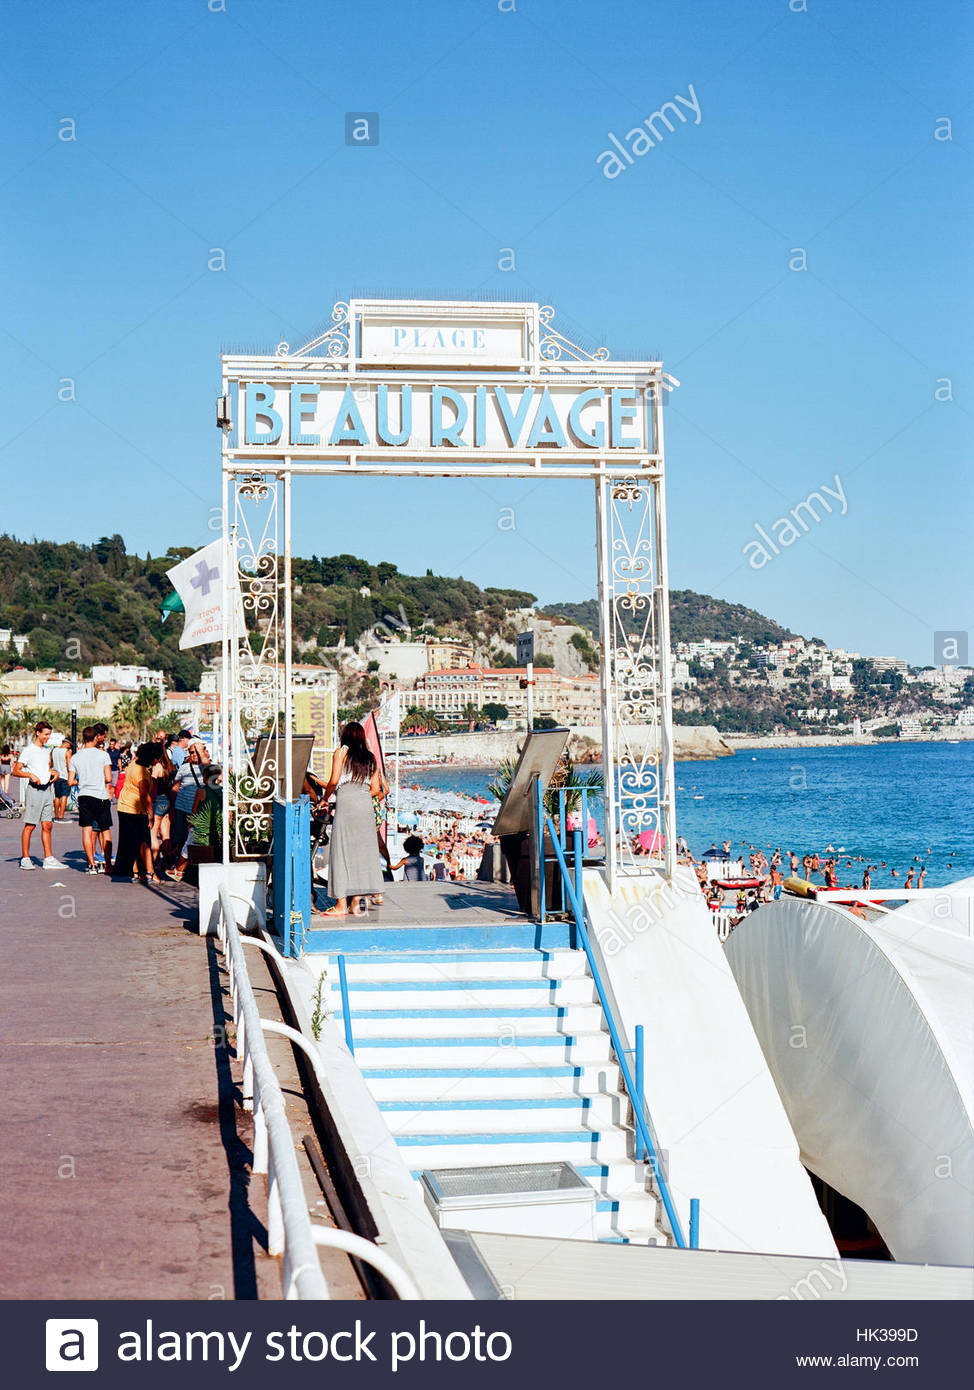 Hotel Beau rivage Nice, Beach sign on the on the promenade des Anglais. Image was taken during summer time with - Stock Image